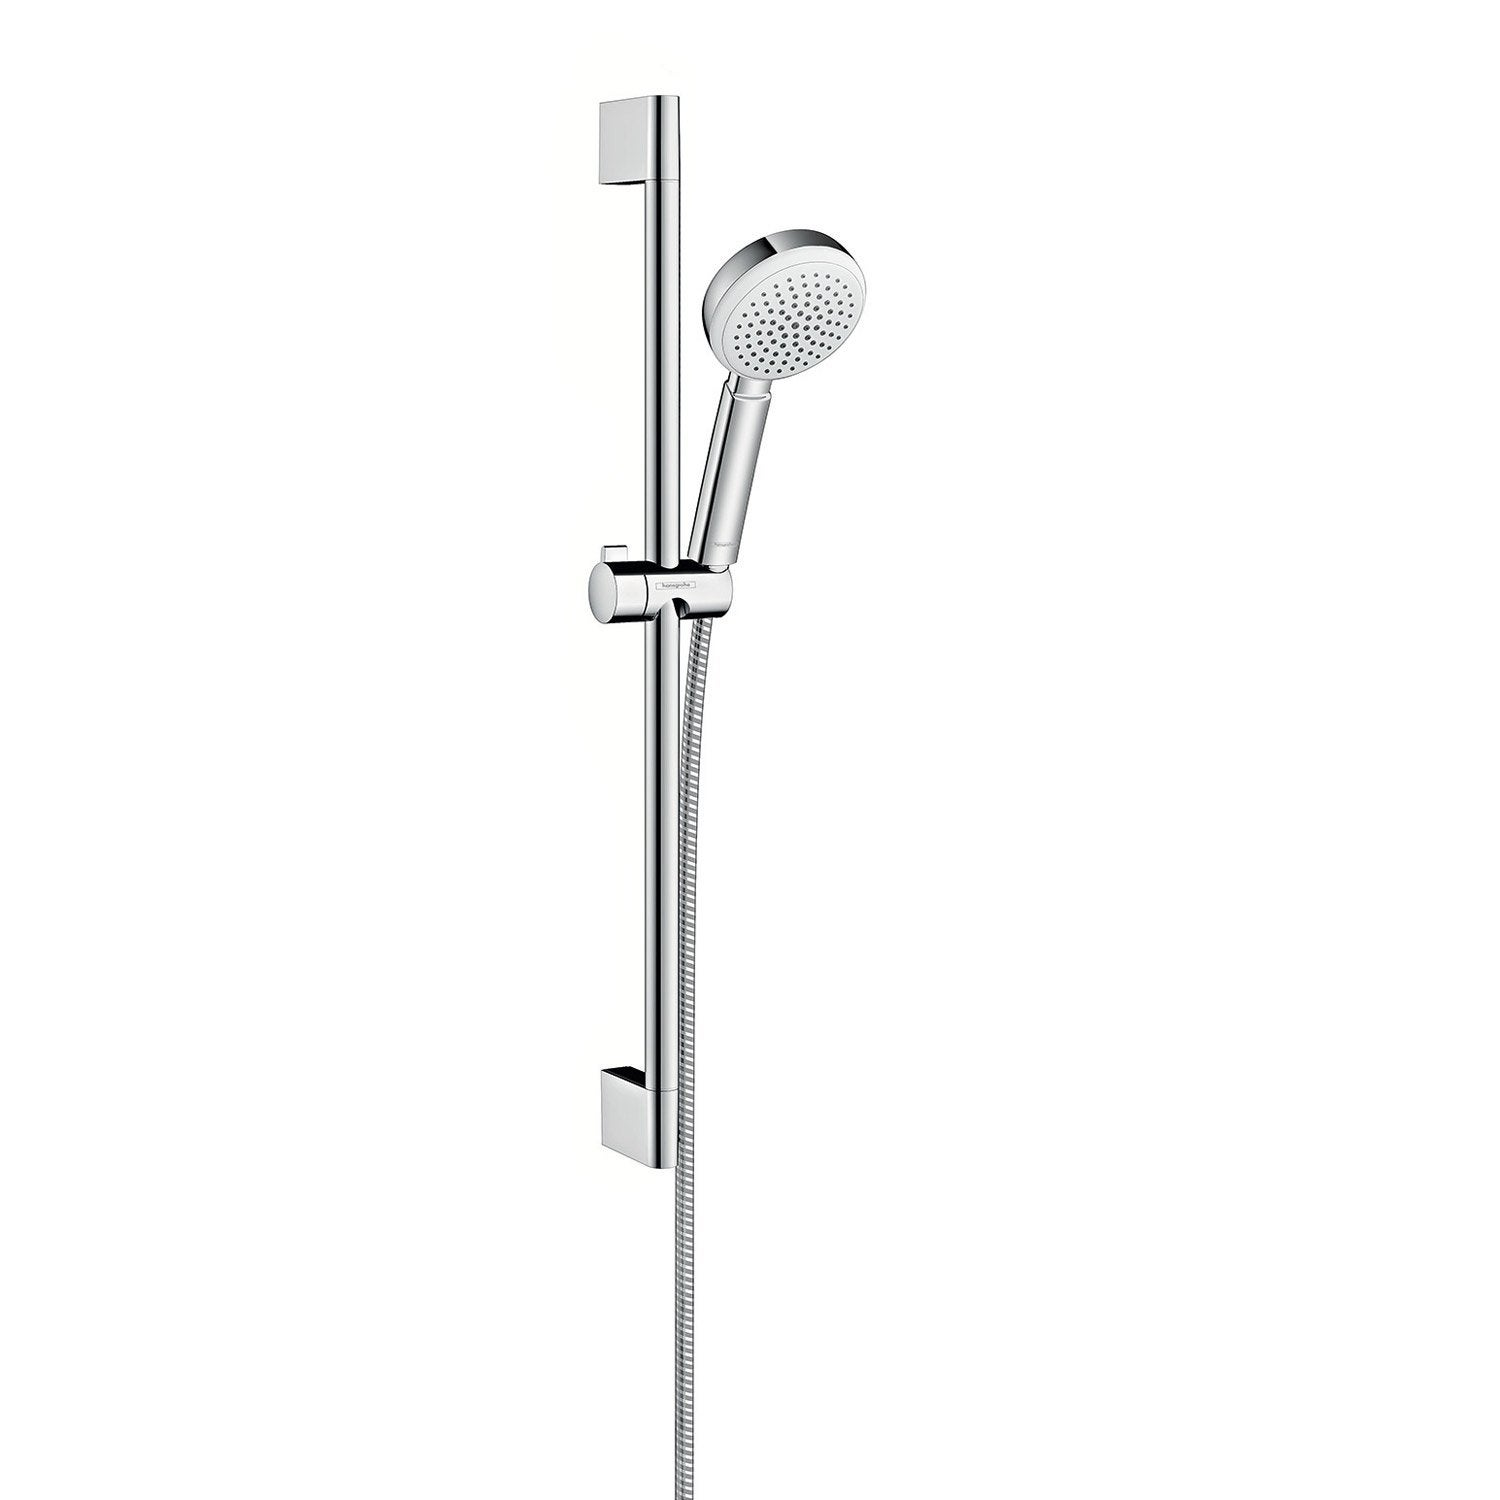 pommeau de douche 1 jet flexible barre hansgrohe myclub eco leroy merlin. Black Bedroom Furniture Sets. Home Design Ideas